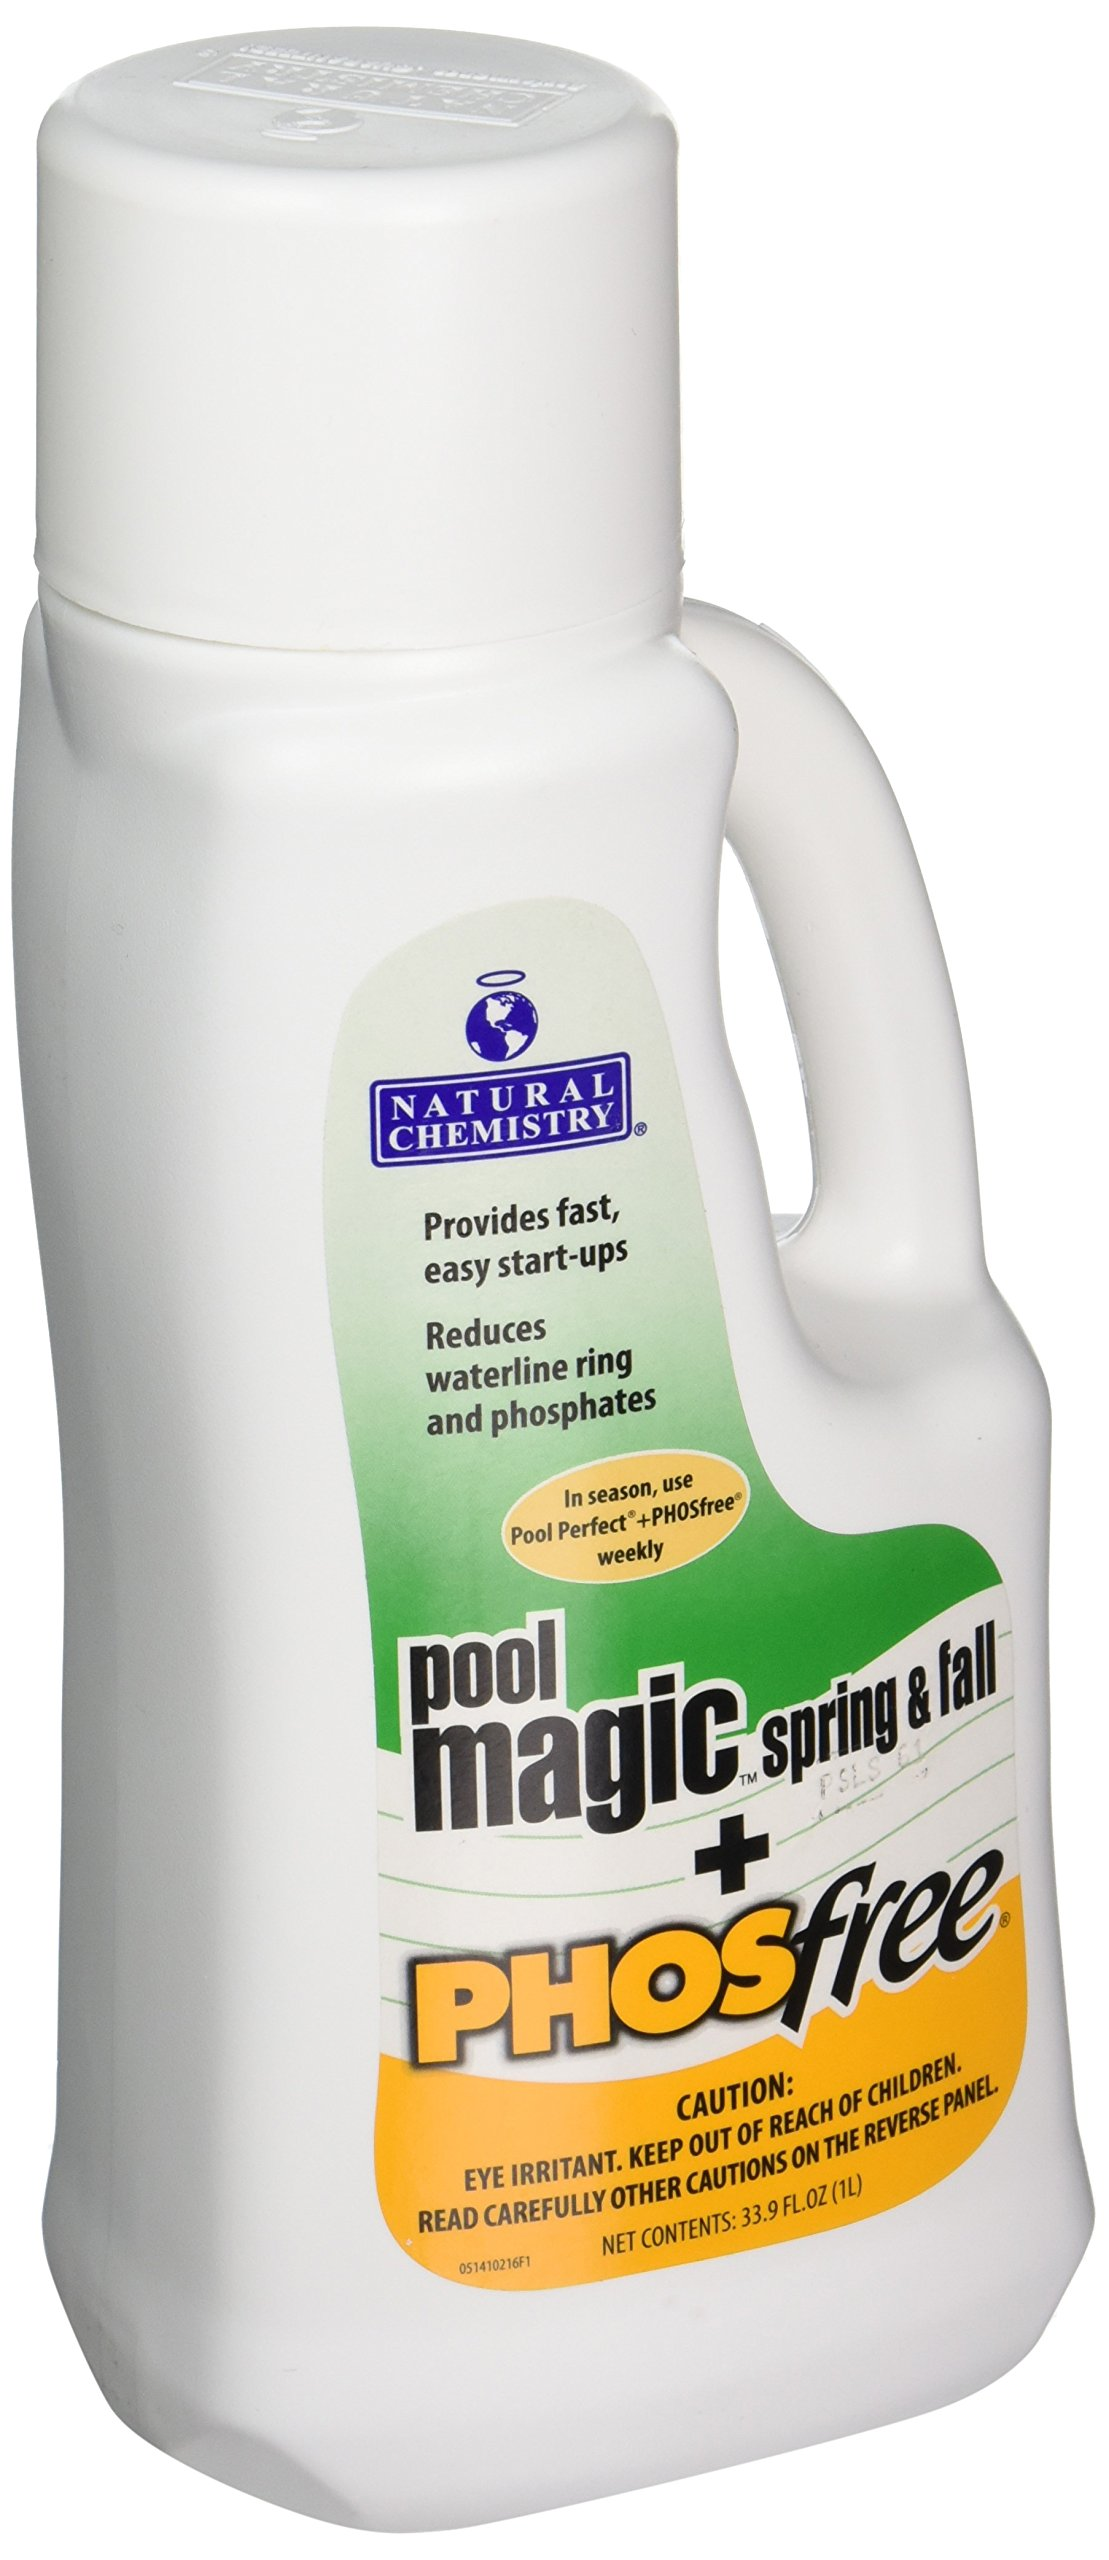 Natural Chemistry 05141 Pool Magic Phosfree, 1-Liter by Natural Chemistry